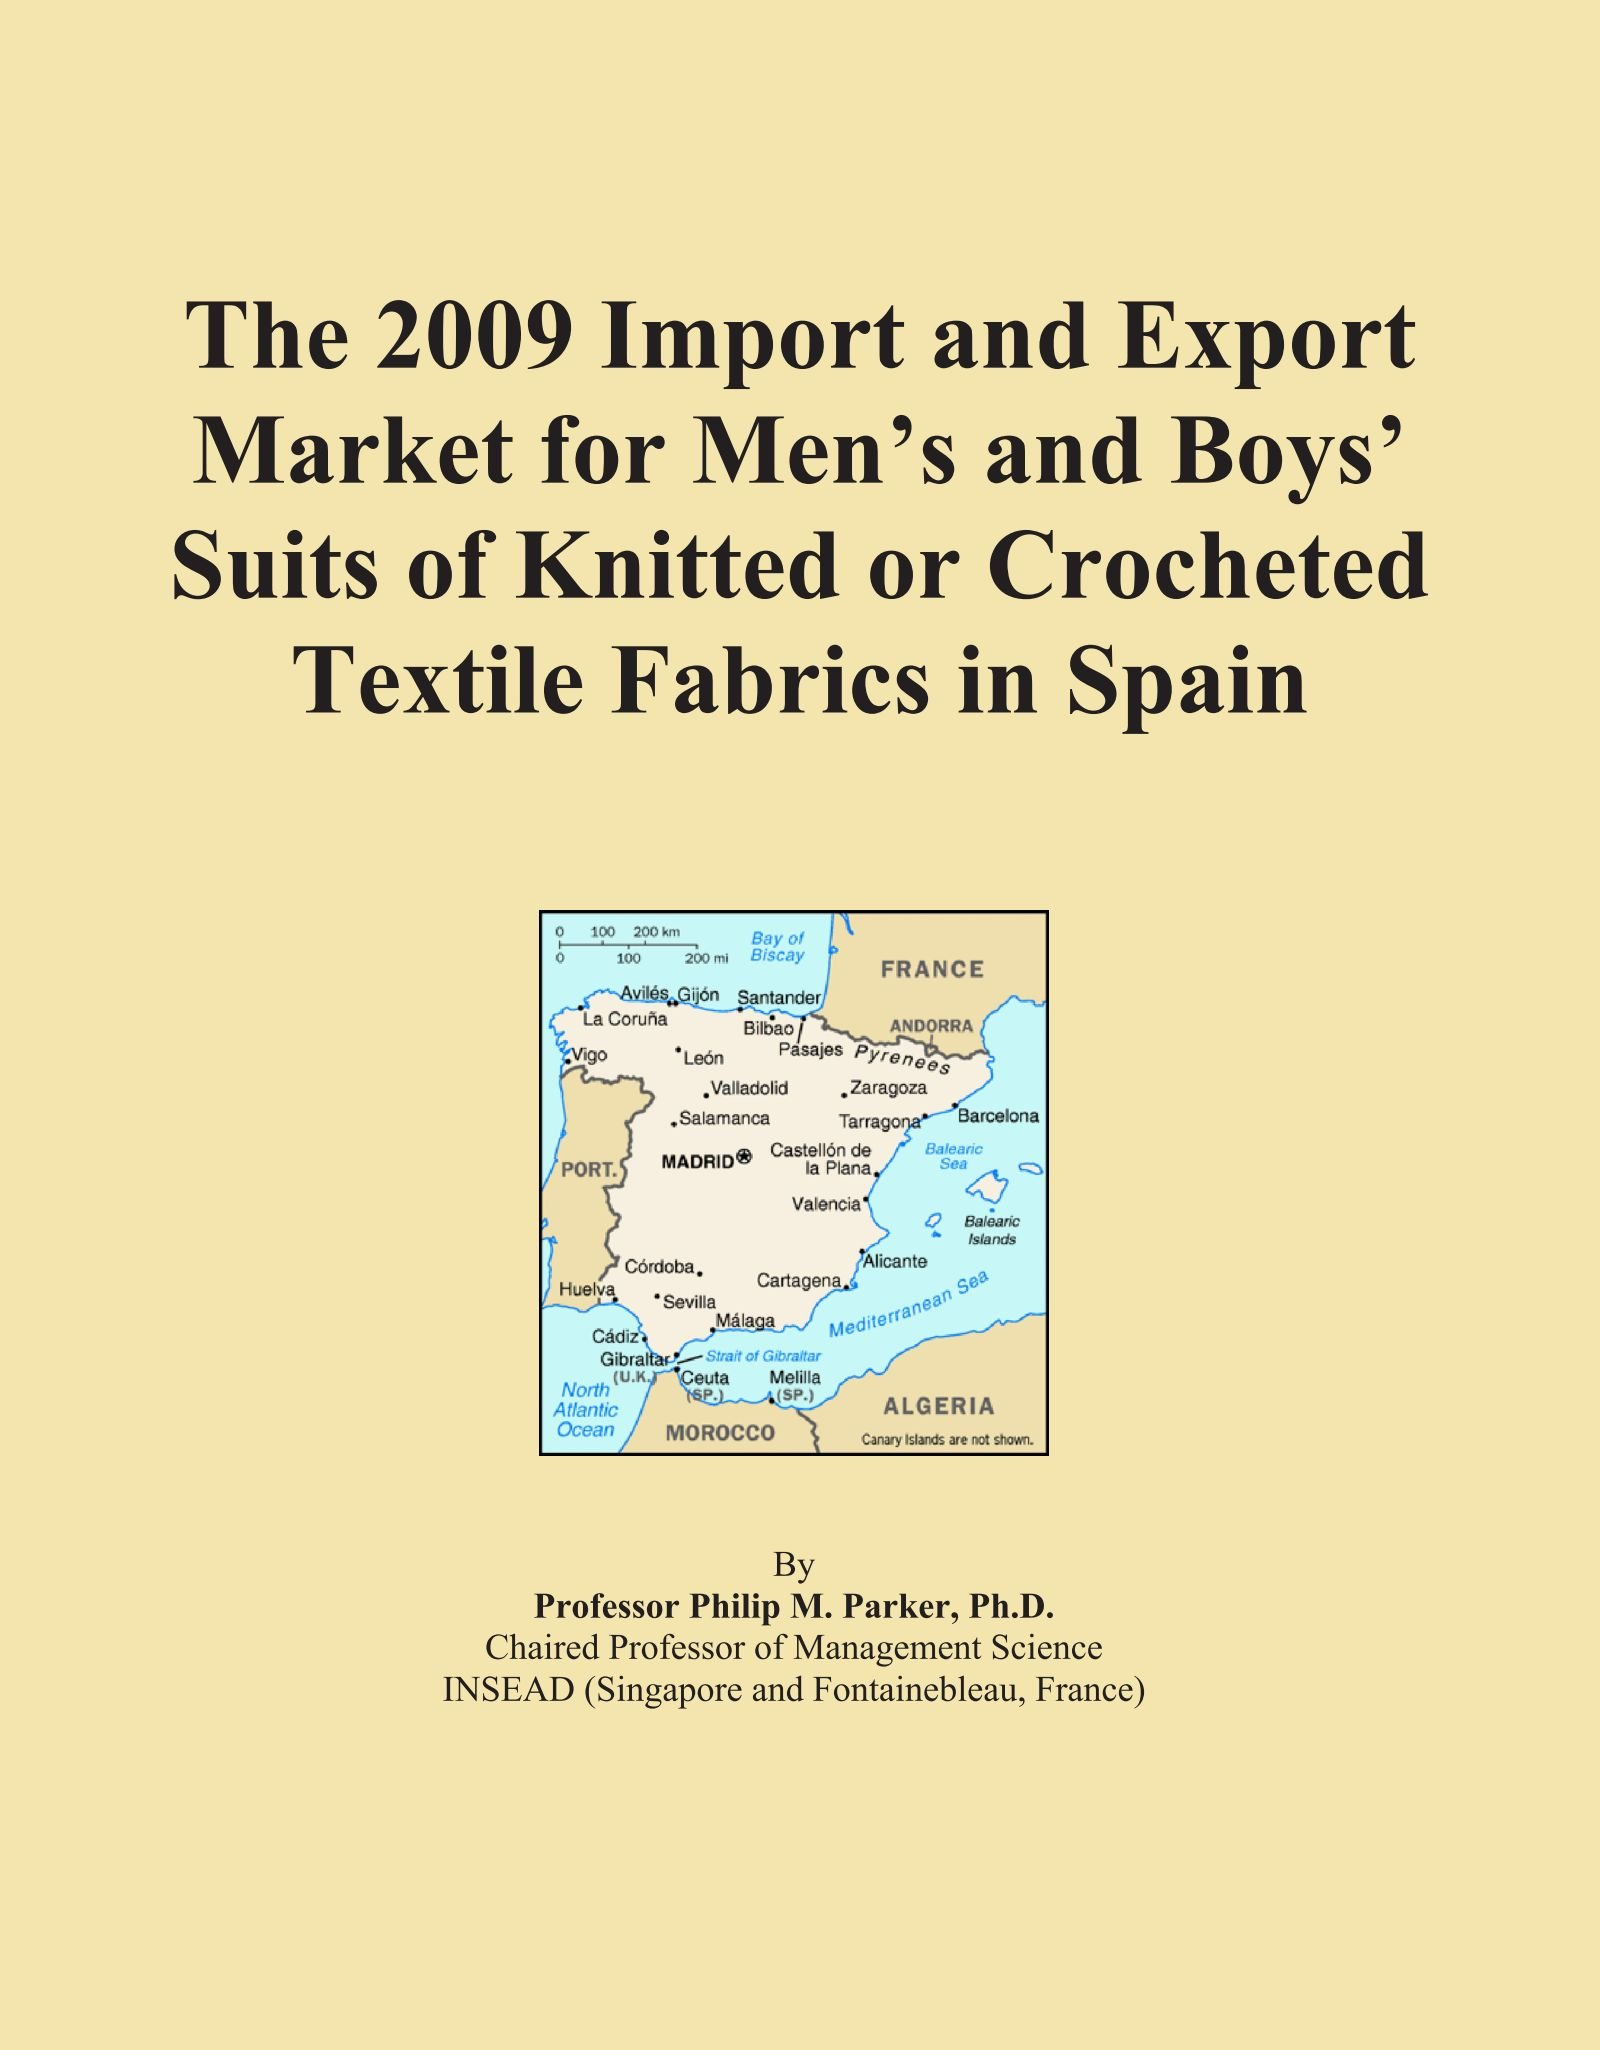 Download The 2009 Import and Export Market for Men's and Boys' Suits of Knitted or Crocheted Textile Fabrics in Spain PDF